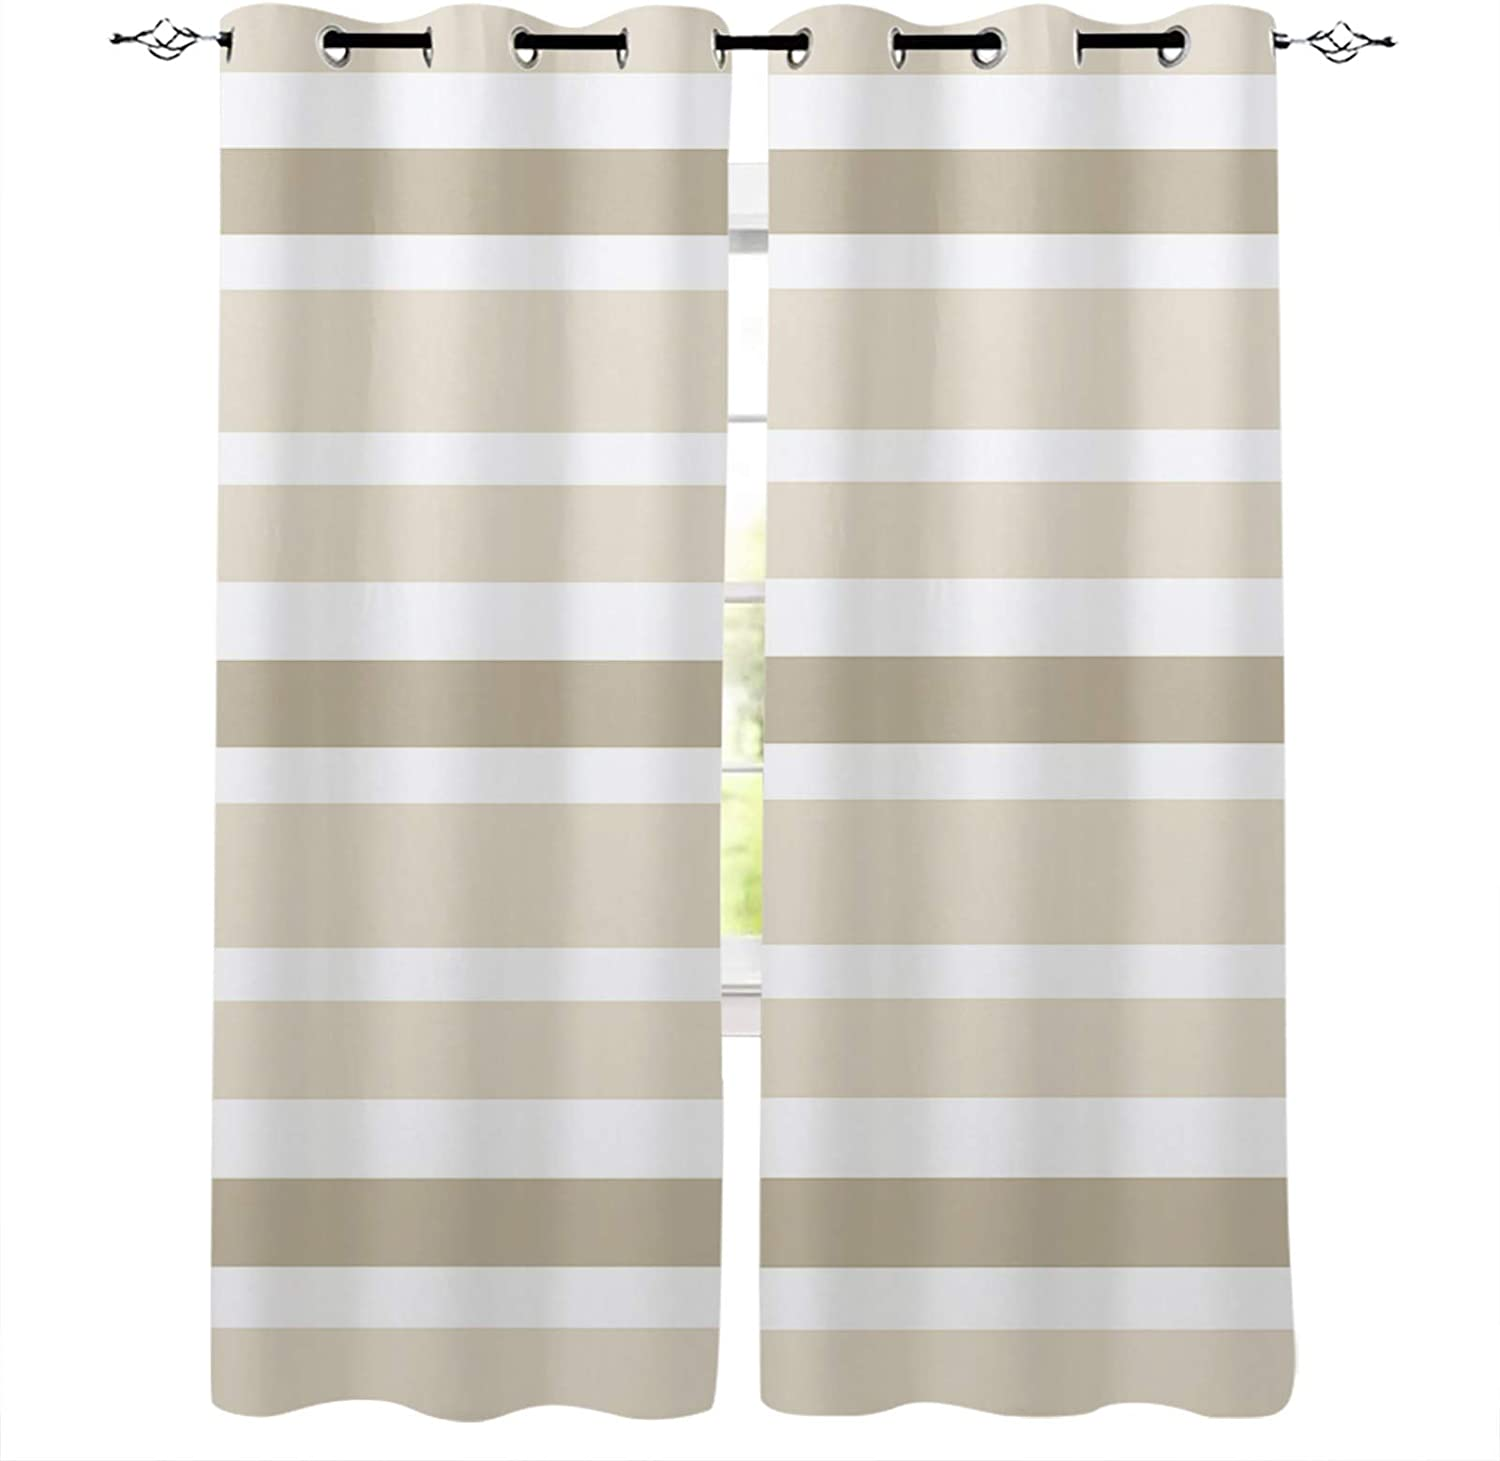 Blackout Curtain Fort Worth Mall Panels Beige Milwaukee Mall White Brown Stripes Insul Thermal